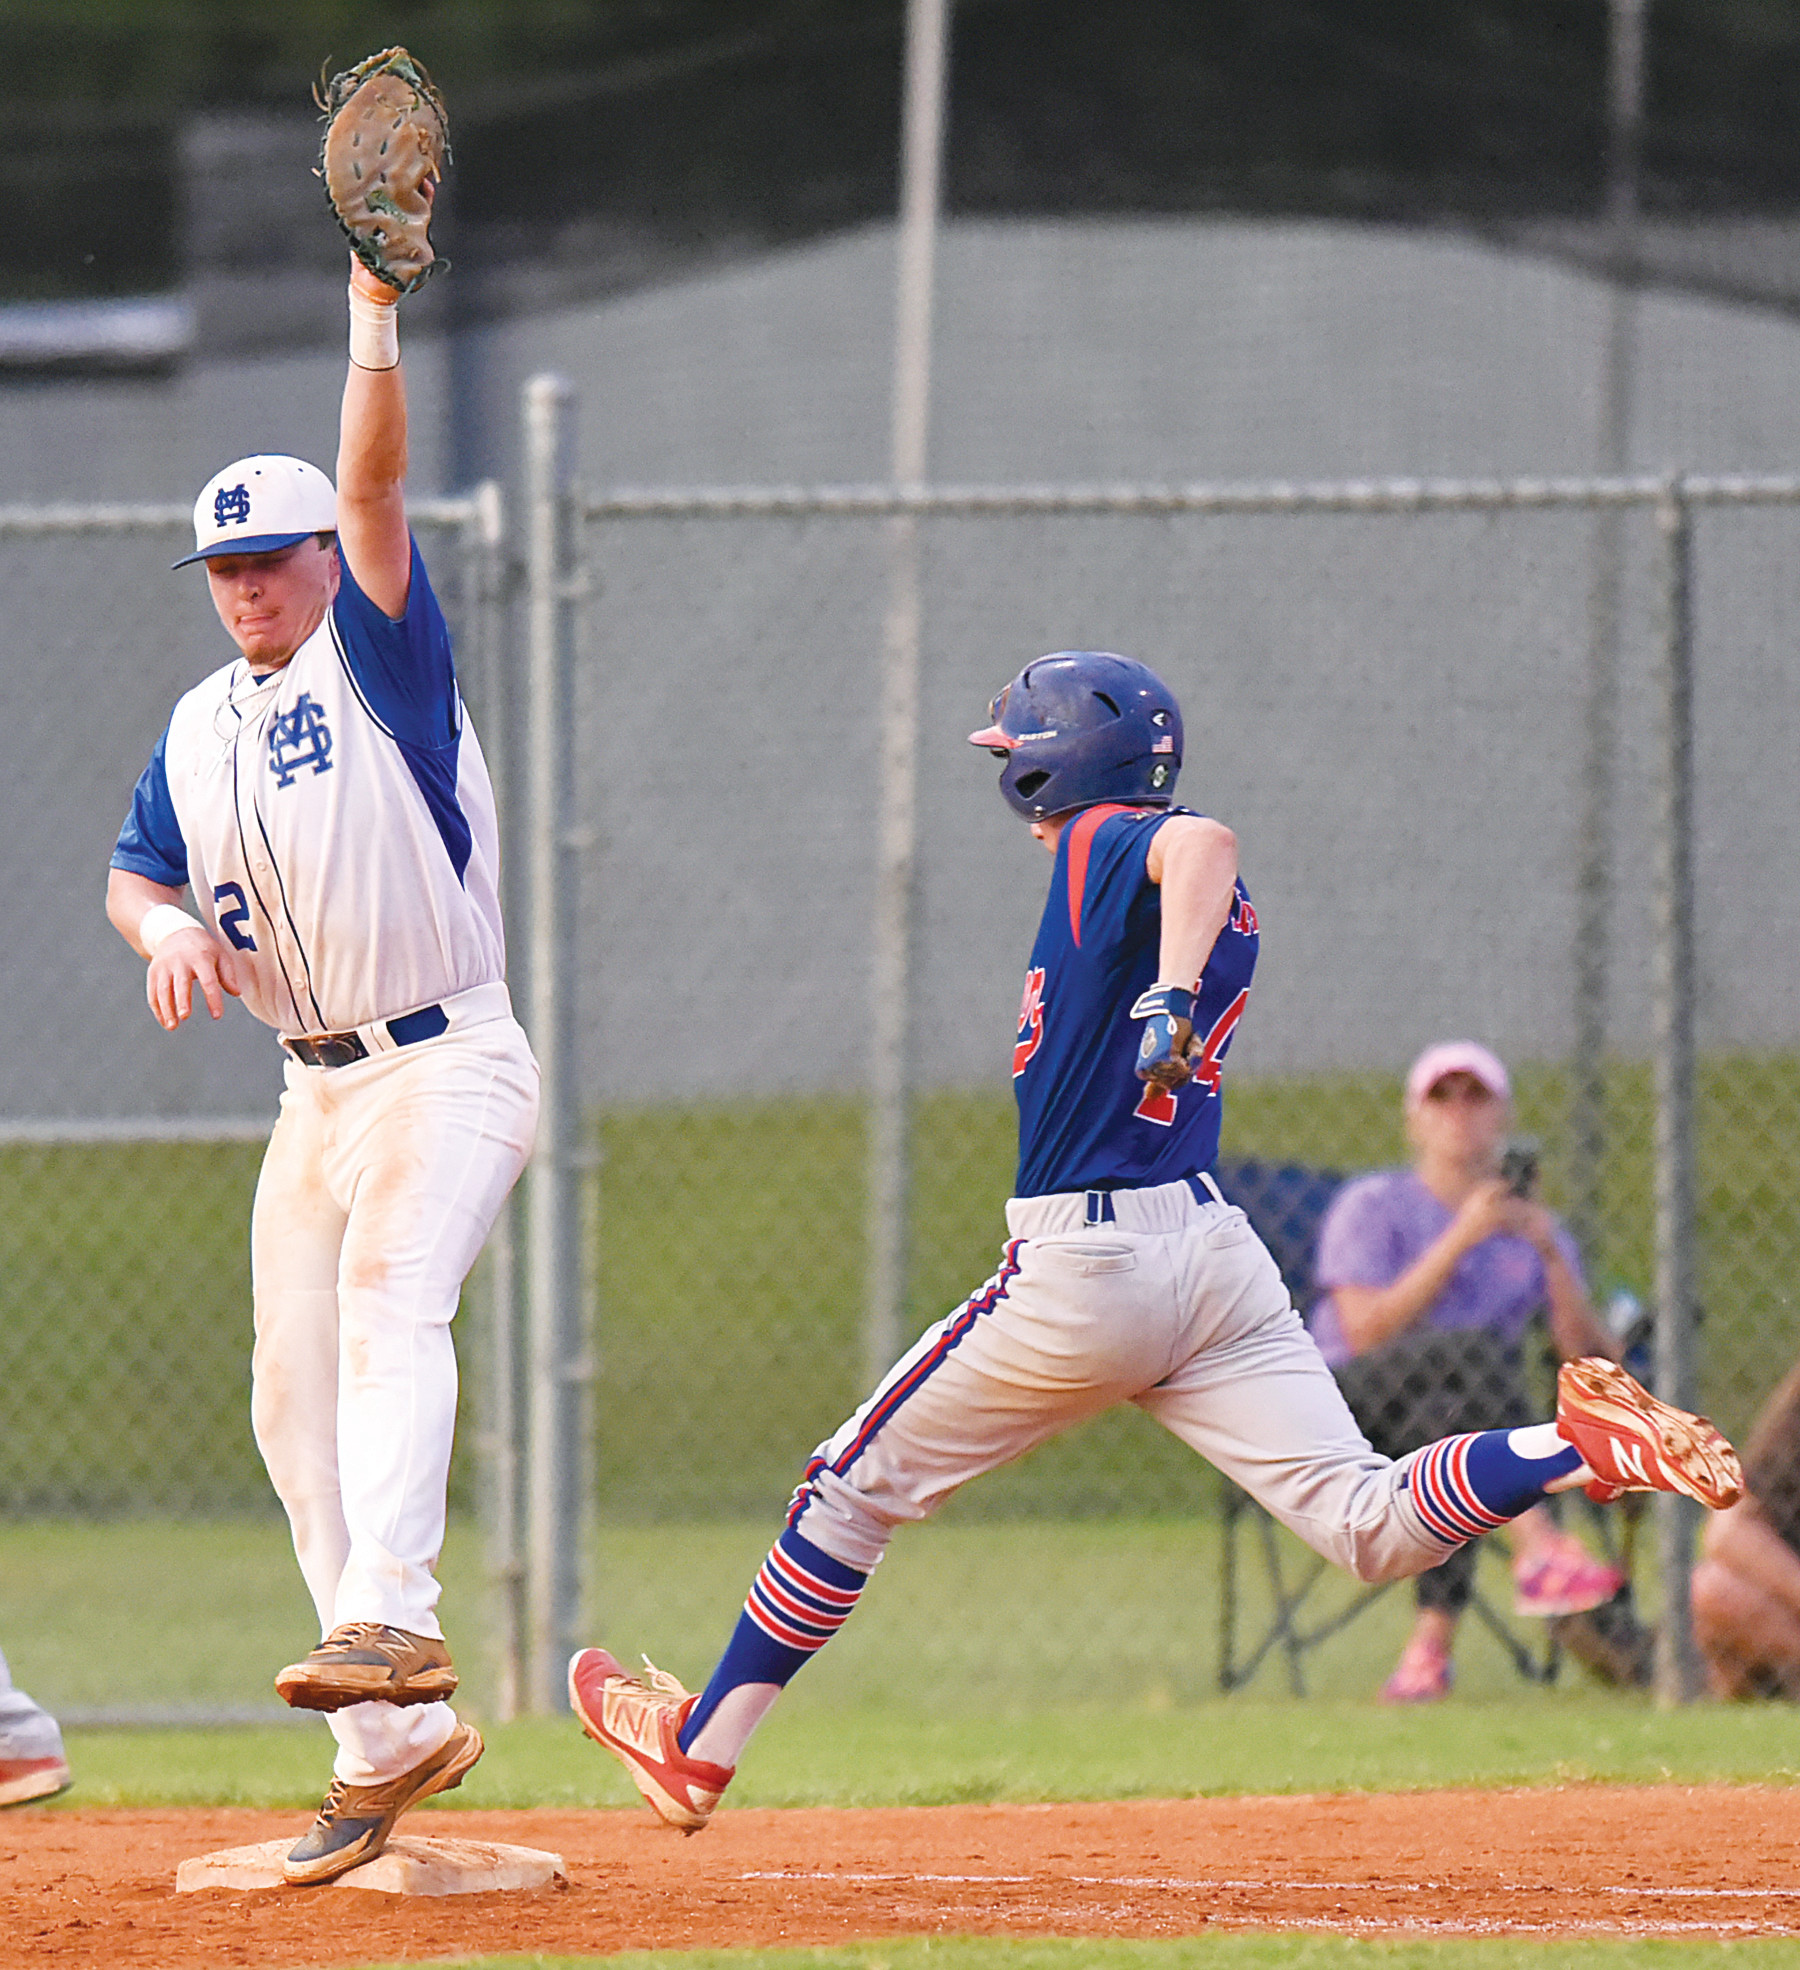 RICK CARPENTER / THE SUMTER ITEM  Manning-Santee first baseman Trent Frye reaches high for a throw as Sumter's Ryan Touchberry races to first on an infield hit in the P-15's 14-2 win on Tuesday at Monarch Field in Manning.